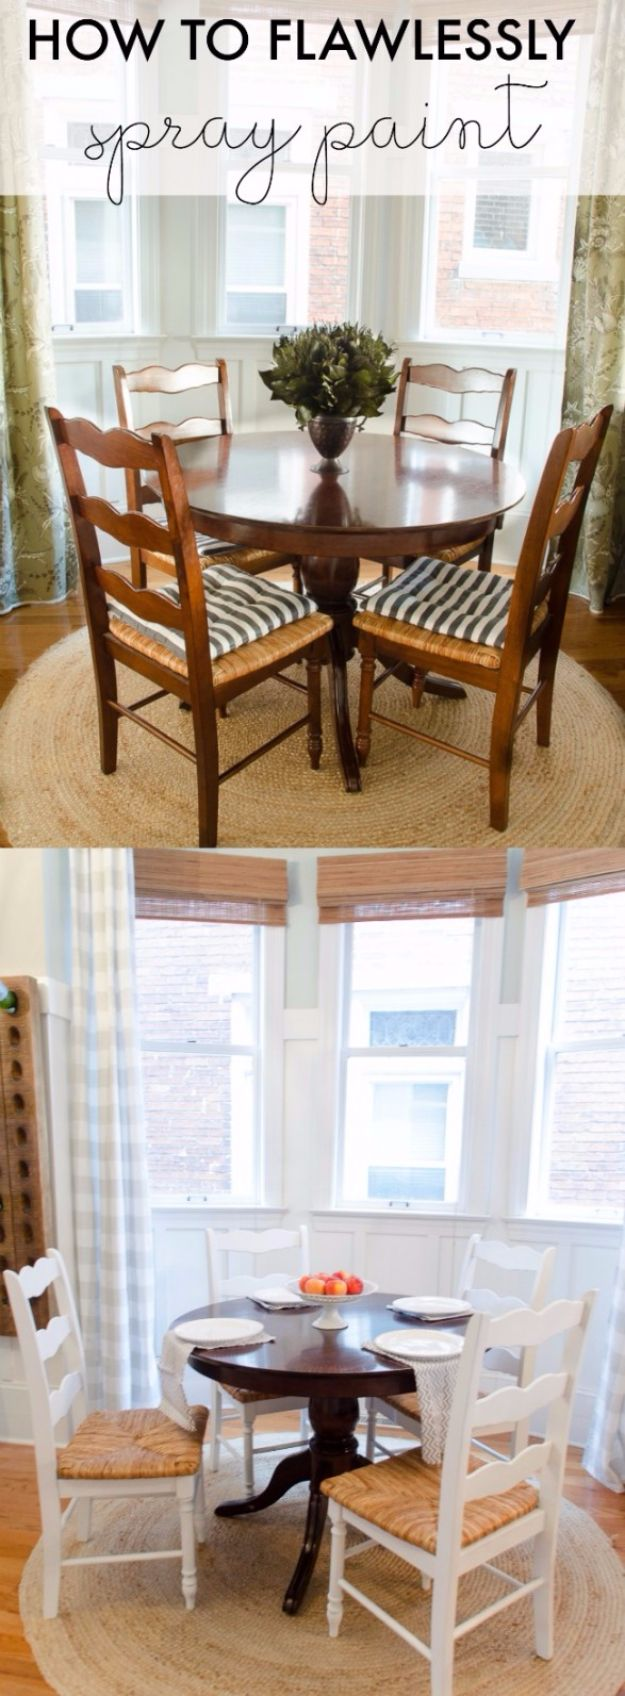 Spray Painting Tips and Tricks - Flawlessly Spray Paint Furnitures - Home Improvement Ideas and Tutorials for Spray Painting Furniture, House, Doors, Trim, Windows and Walls - Step by Step Tutorials and Best How To Instructions - DIY Projects and Crafts by DIY JOY #diyideas